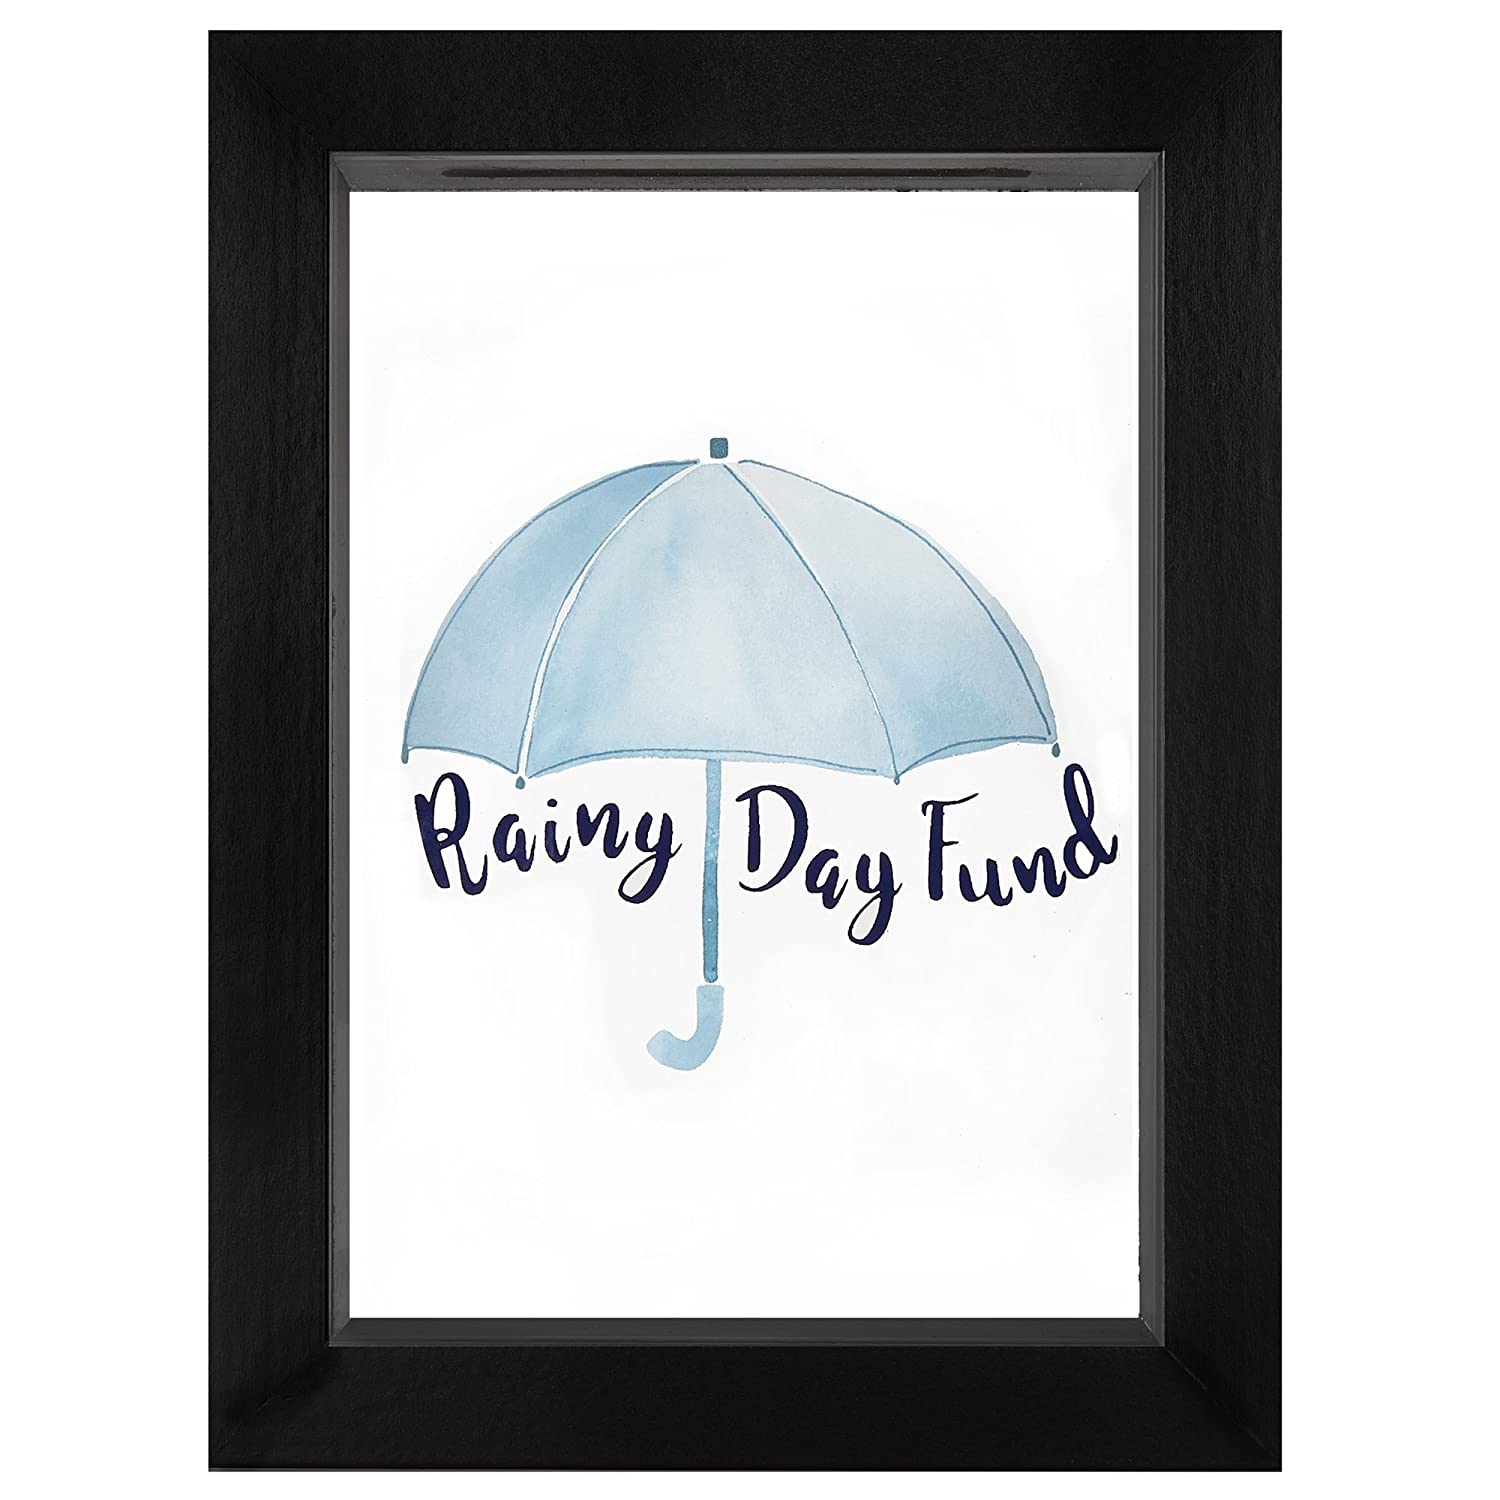 Americanflat Rainy Day Fund Decorative Shadow Box Frame, Glass Sized 5x7 Inches DSB0507RDF